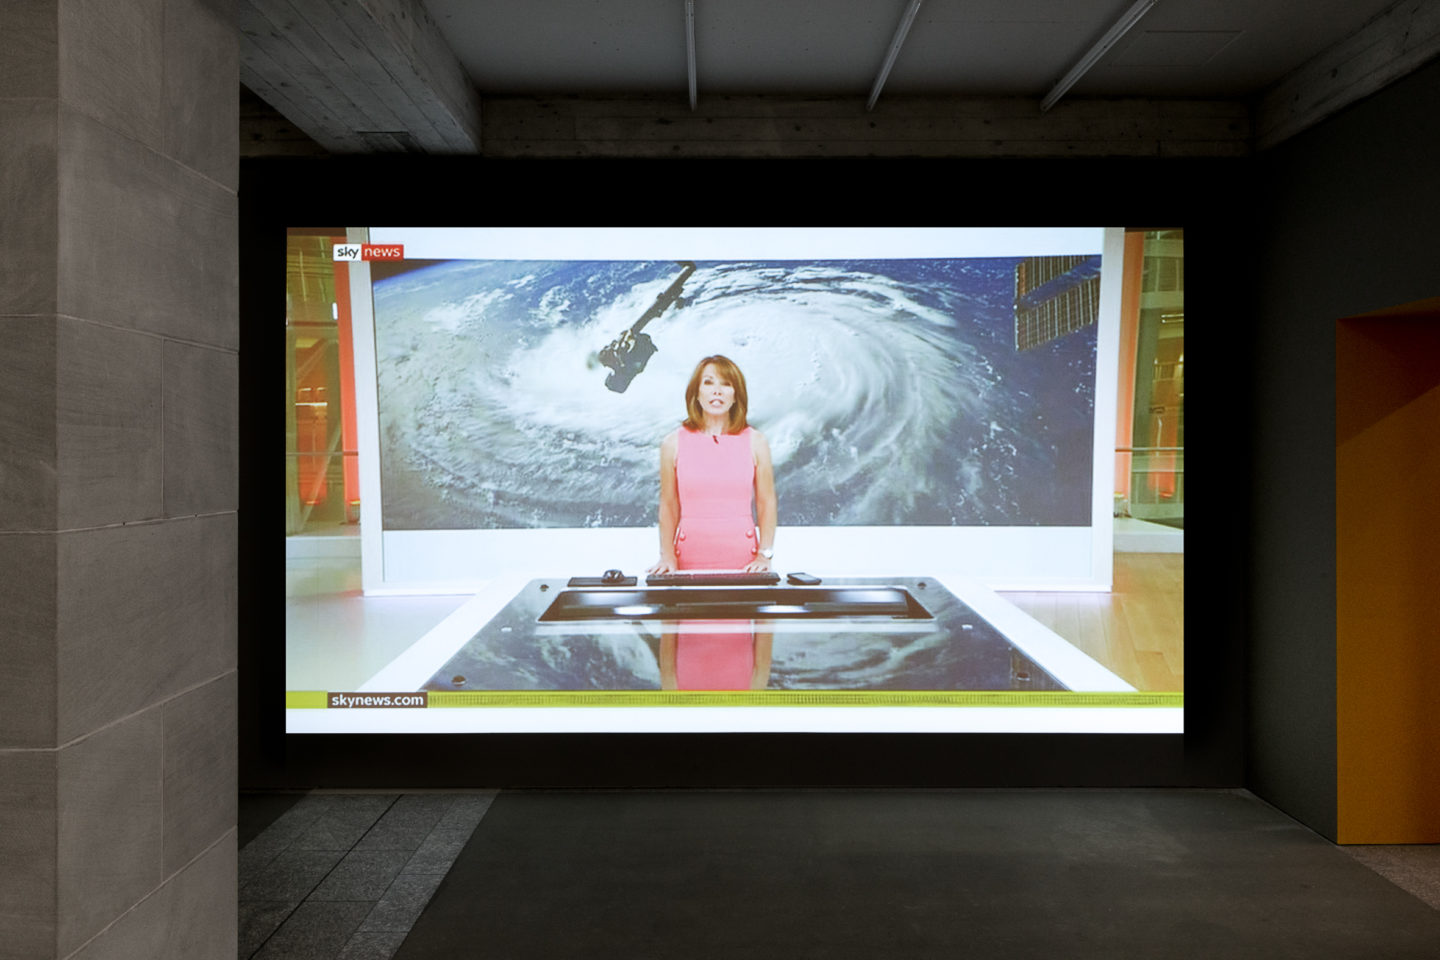 Exhibition View Groupshow «The Humans; view on Ed Atkins, Simon Thomson Sky News Live, 2015 – ongoing» / Photo: Sebastian Stalder / Courtesy: the artists and Cabinet Gallery, London